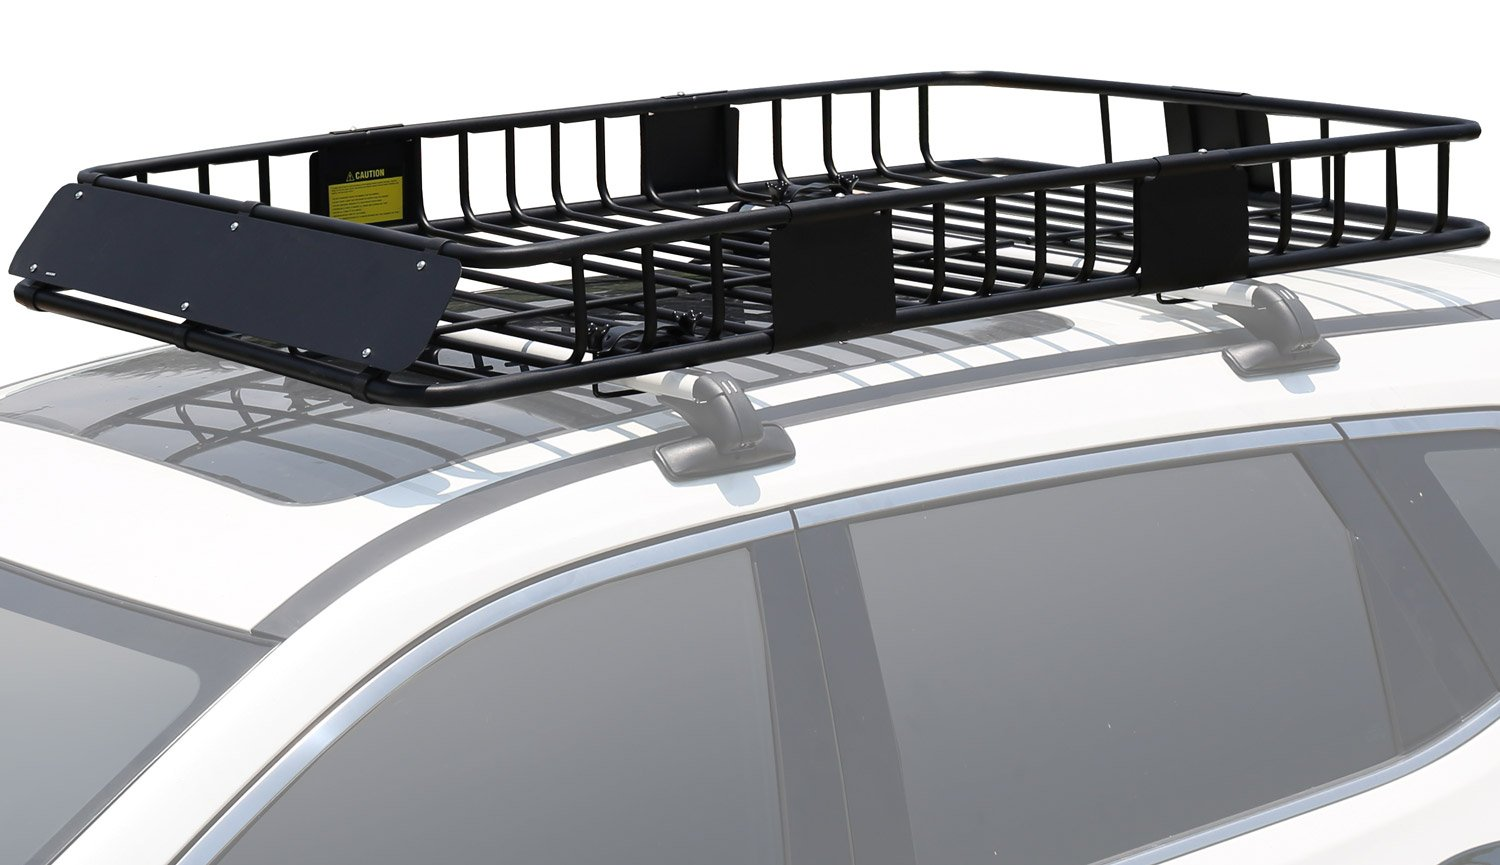 "Leader Accessories Roof Rack Cargo Basket with 150 LB Capacity Extension  64""x 39""x 6' Car Top Luggage Holder Carrier Basket Fit for SUV Truck Cars:  Amazon.com.au: Automotive"